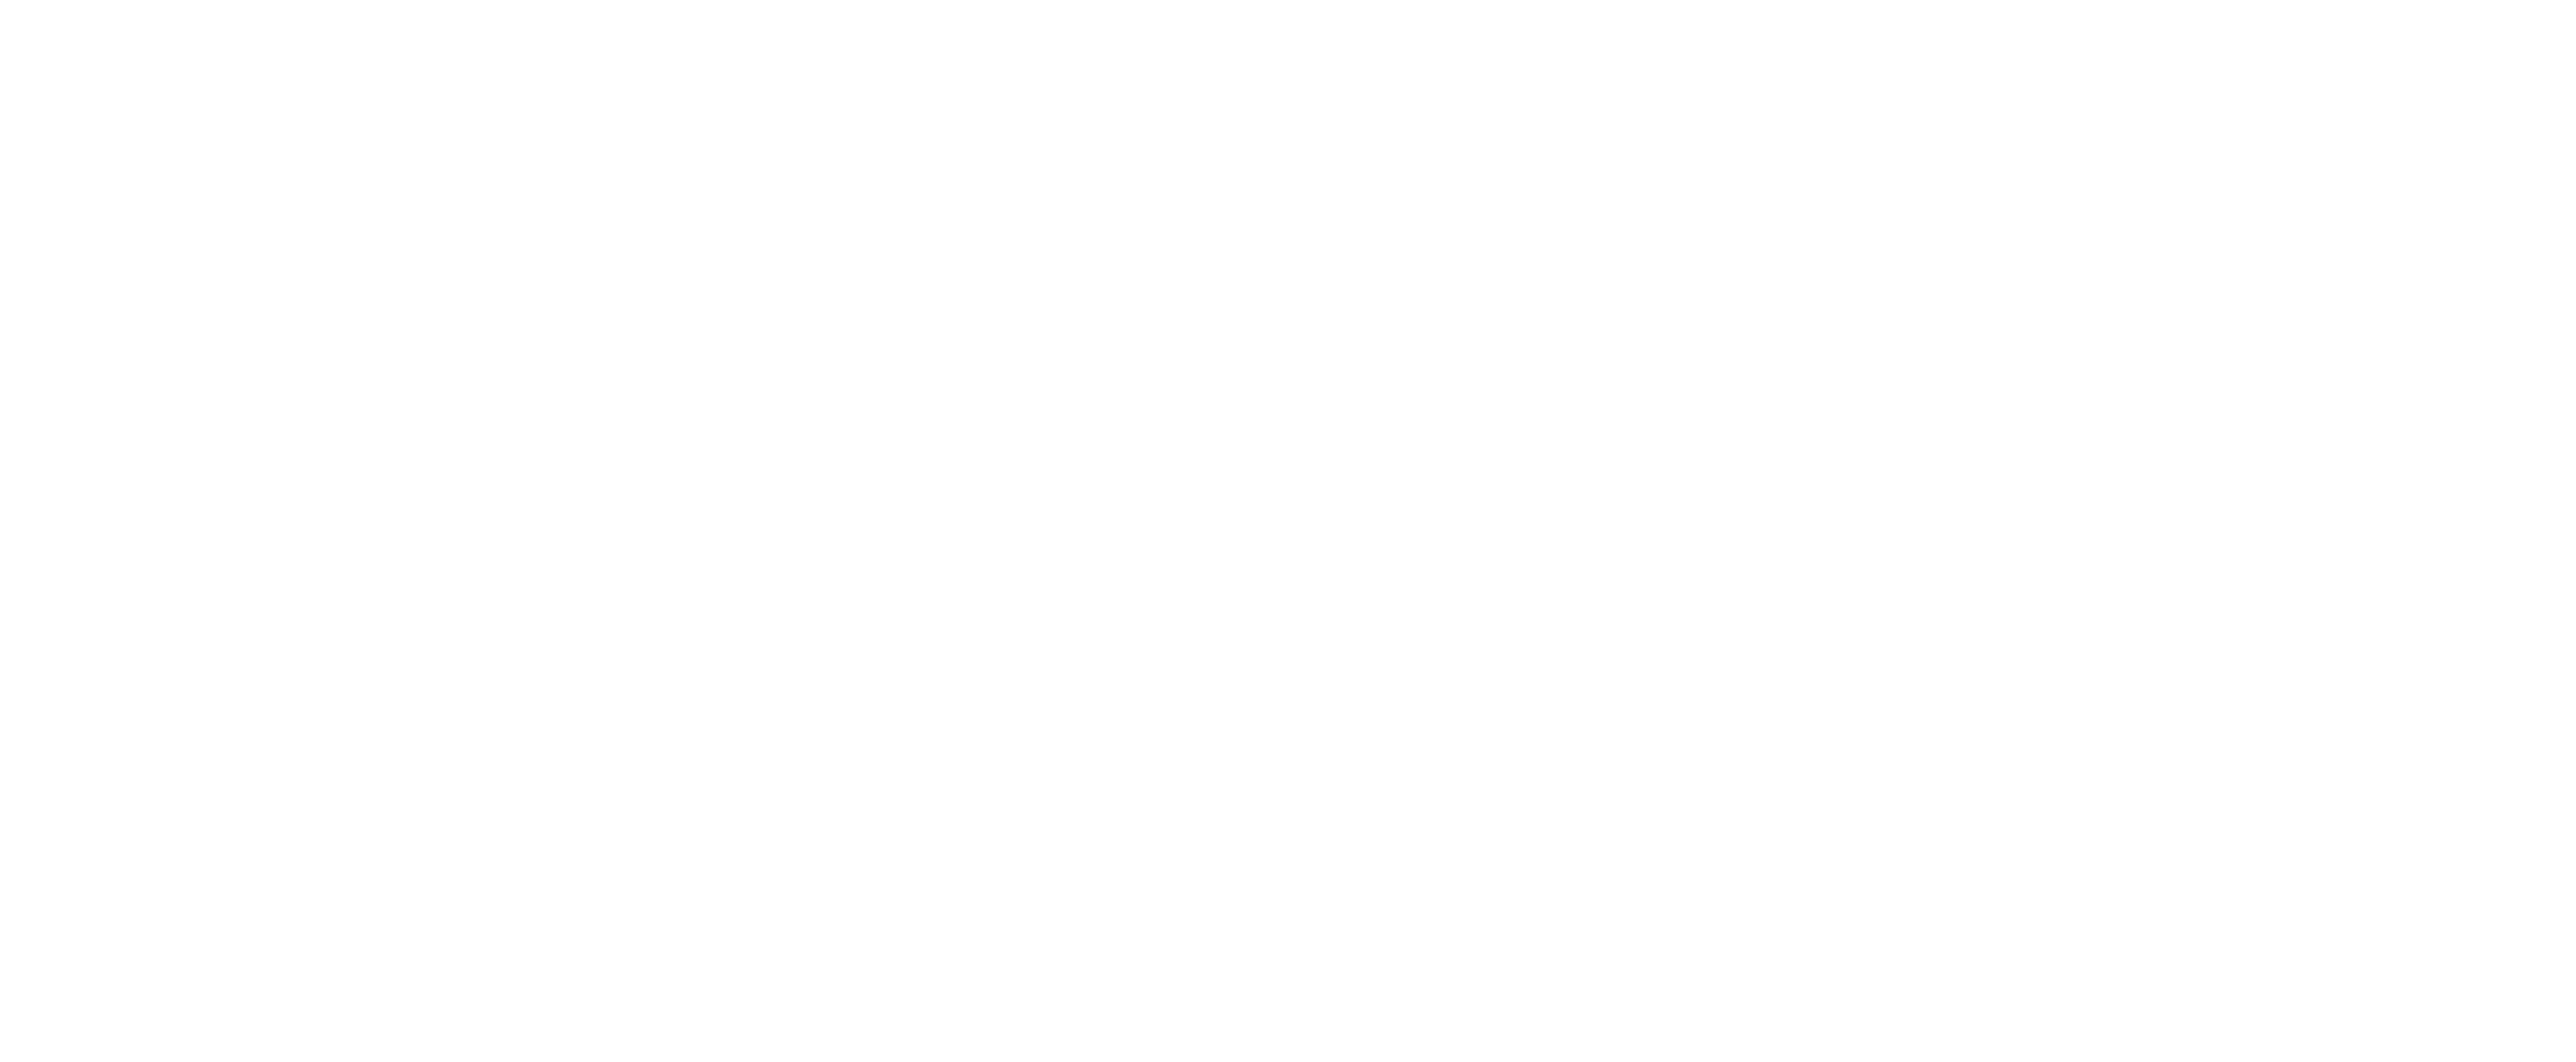 Jones Florist - Flower Delivery in Lampasas, TX